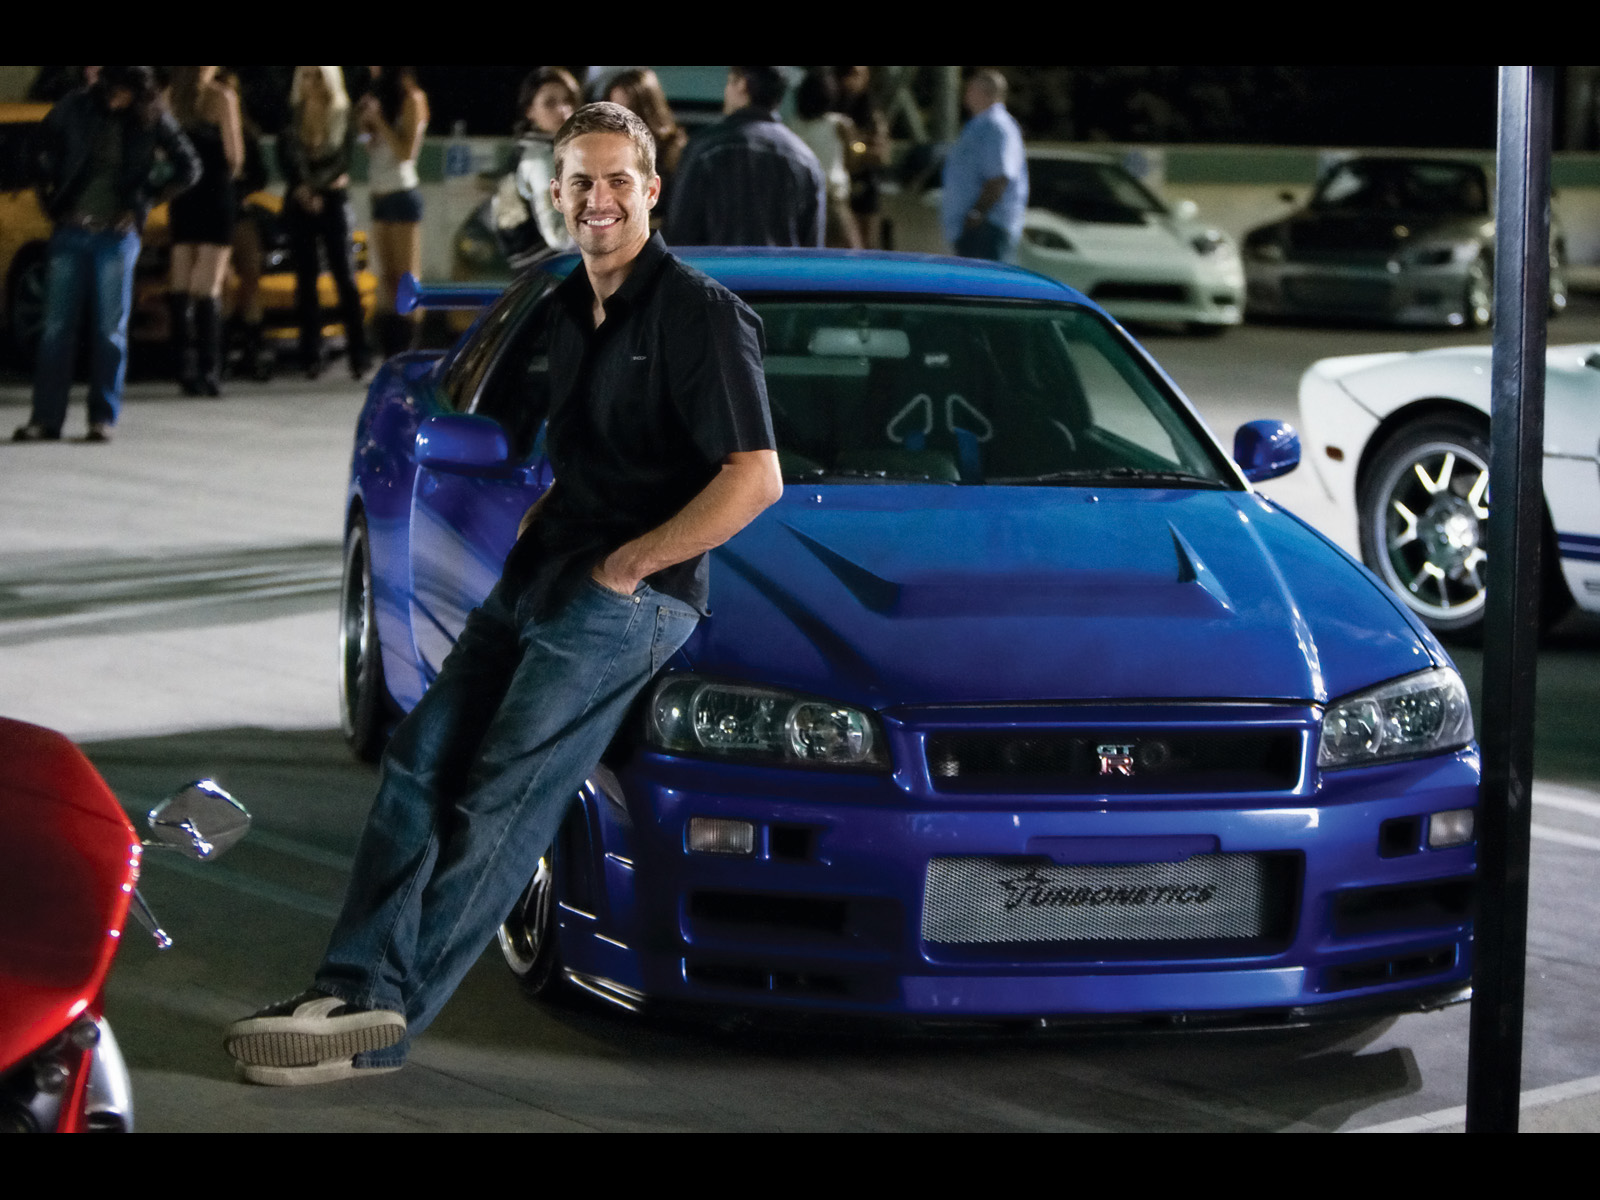 Fast Furious Tempts Oc Gearhead To Illegally Import Nissan Skyline